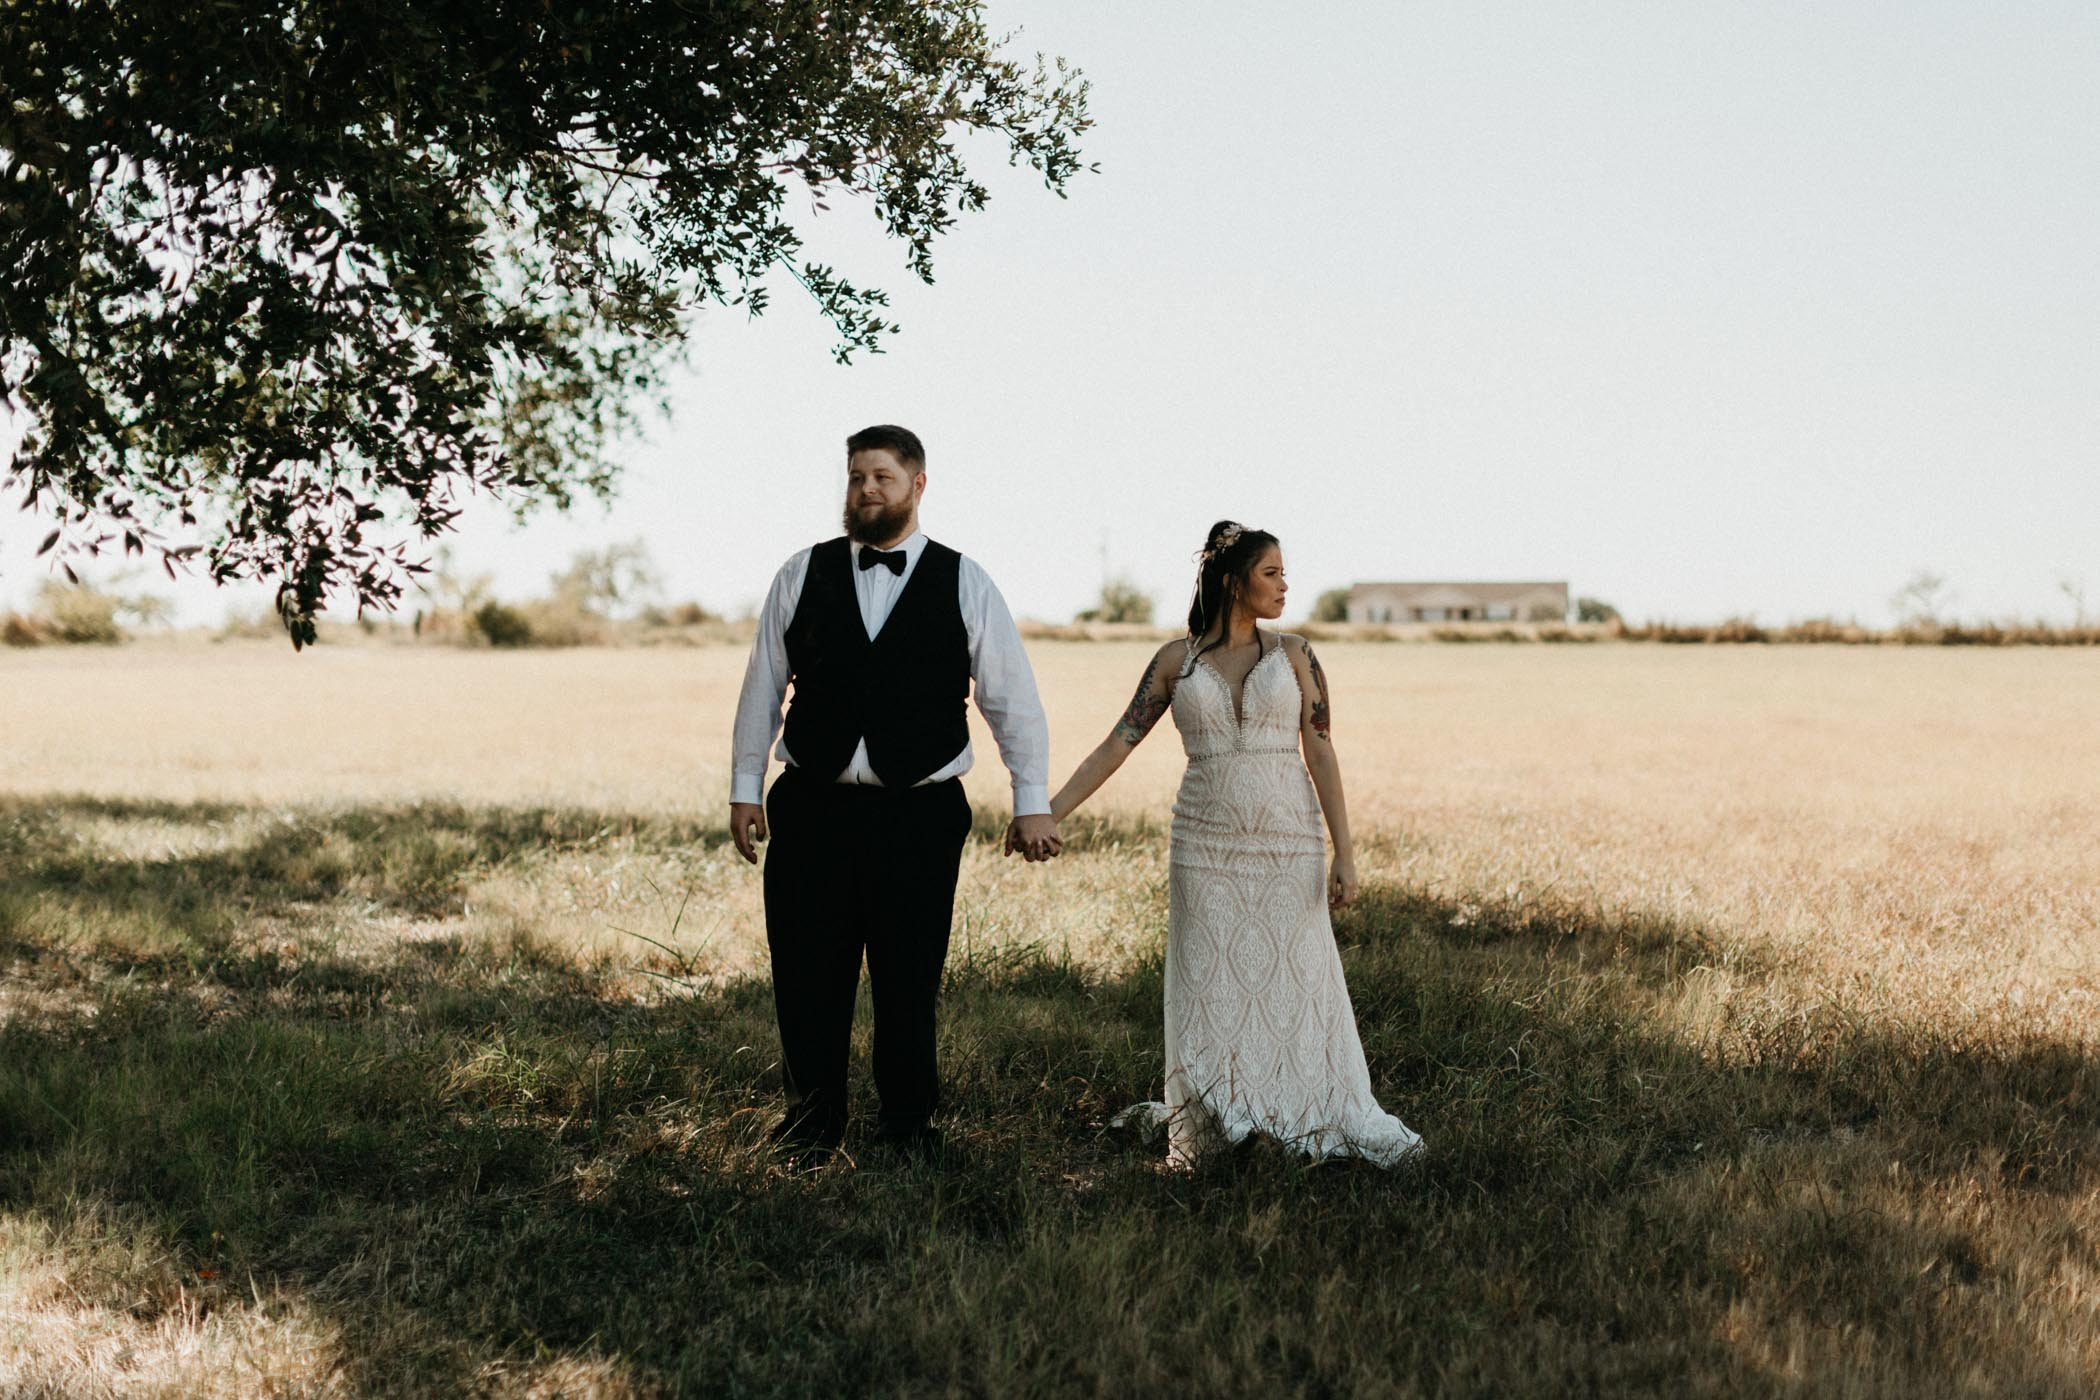 Unique moody photo of bride and groom holding hands and looking in opposite directions